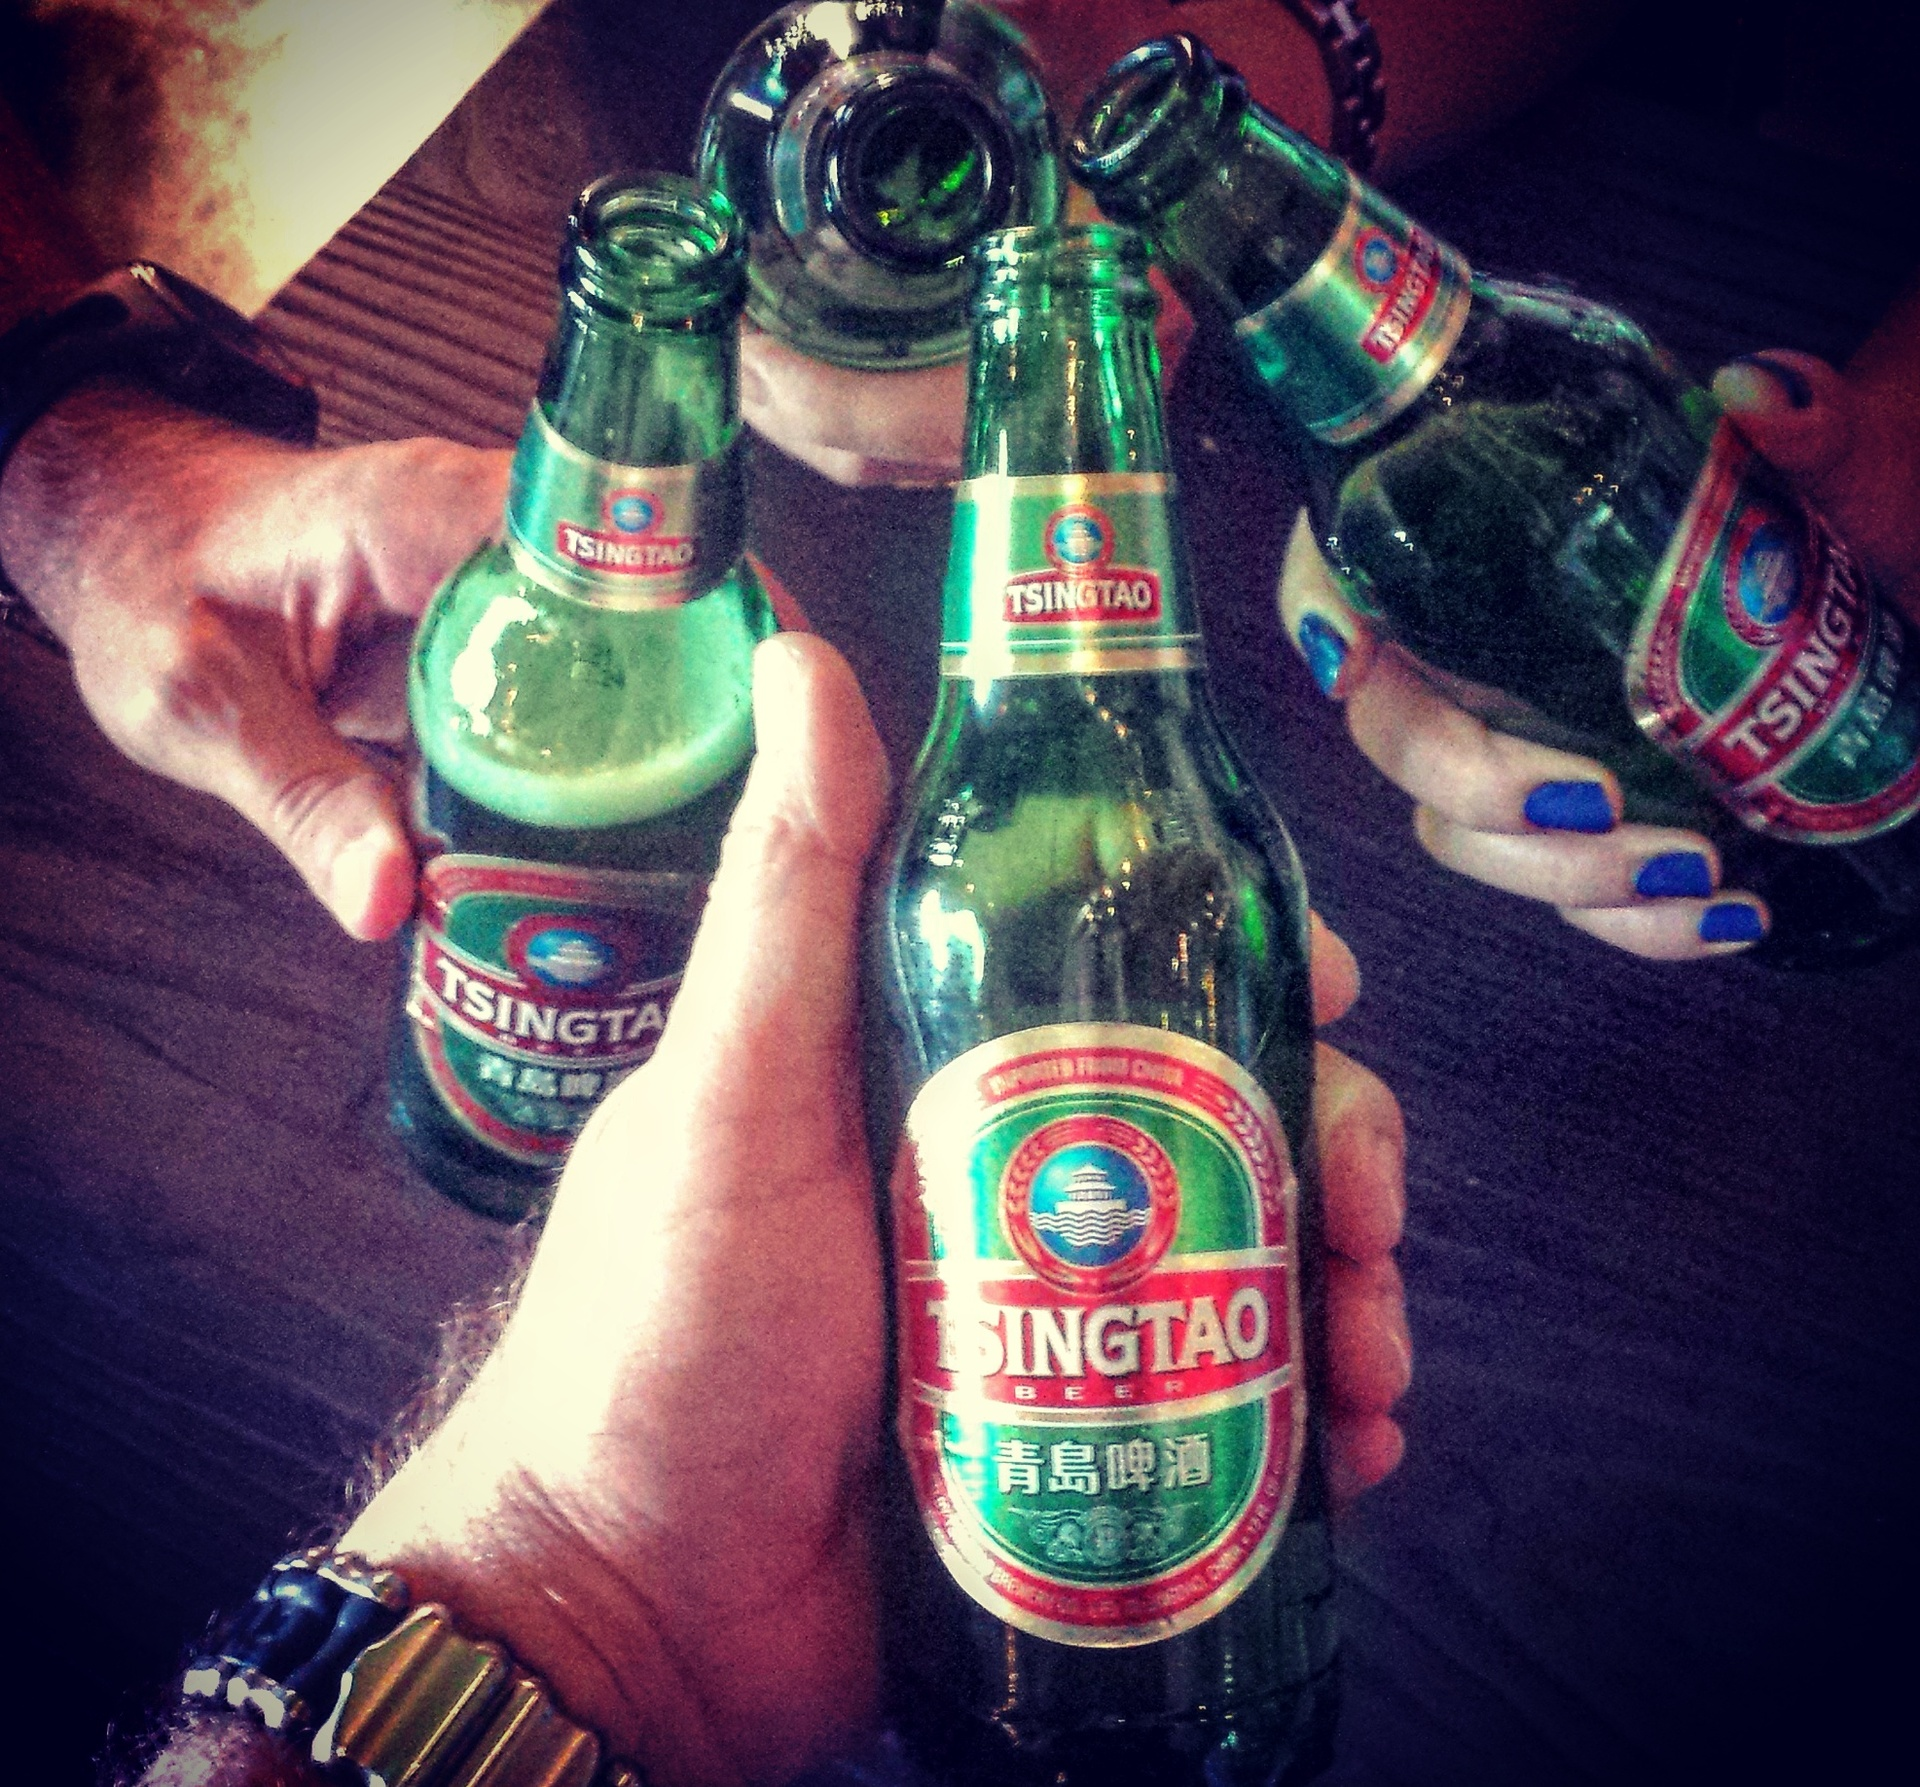 cheers! tsingtao beer time with friends